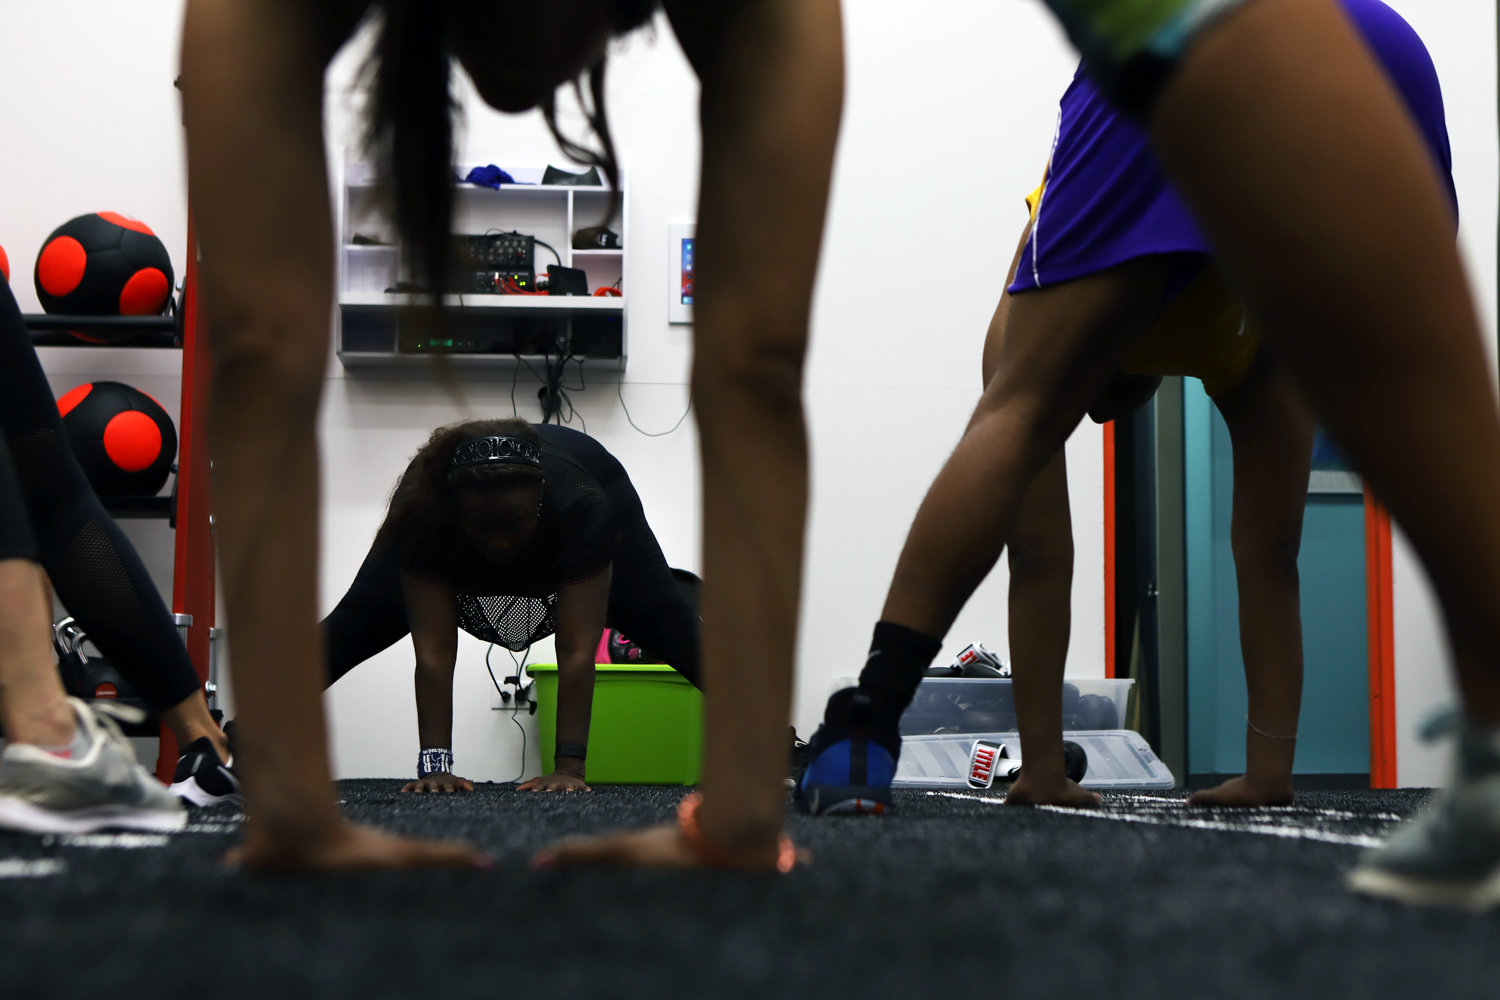 Students in a kickboxing class at The Riverdale Y's Quest Training Studio cool down with stretching. The studio was previously home to The Y's racquetball court.